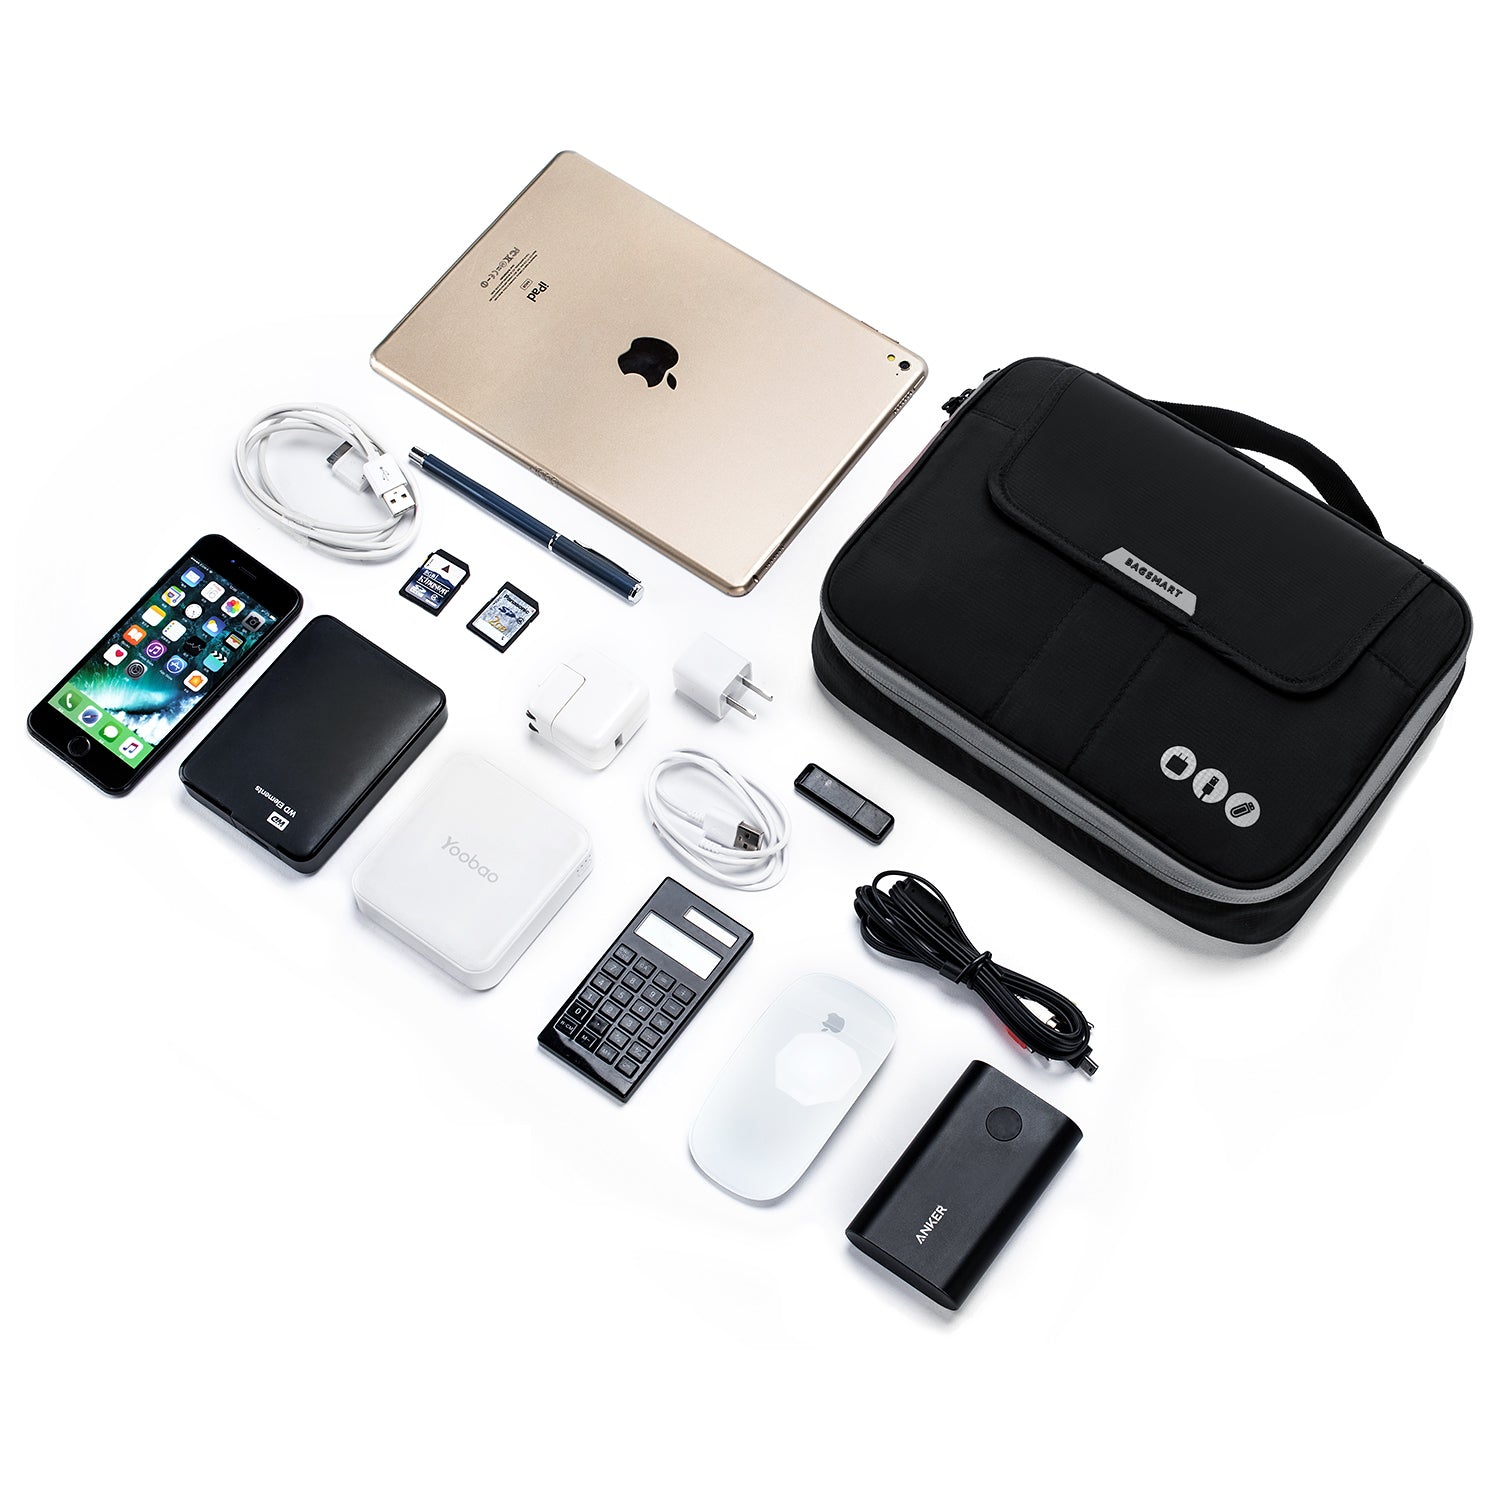 Charger USB SD Card Phone OE-Blue Electronic Organizer Travel Universal Cable Organizer Cable Cord Bag Electronics Accessories Cases Storage Bag Waterproof for Cable Power Bank